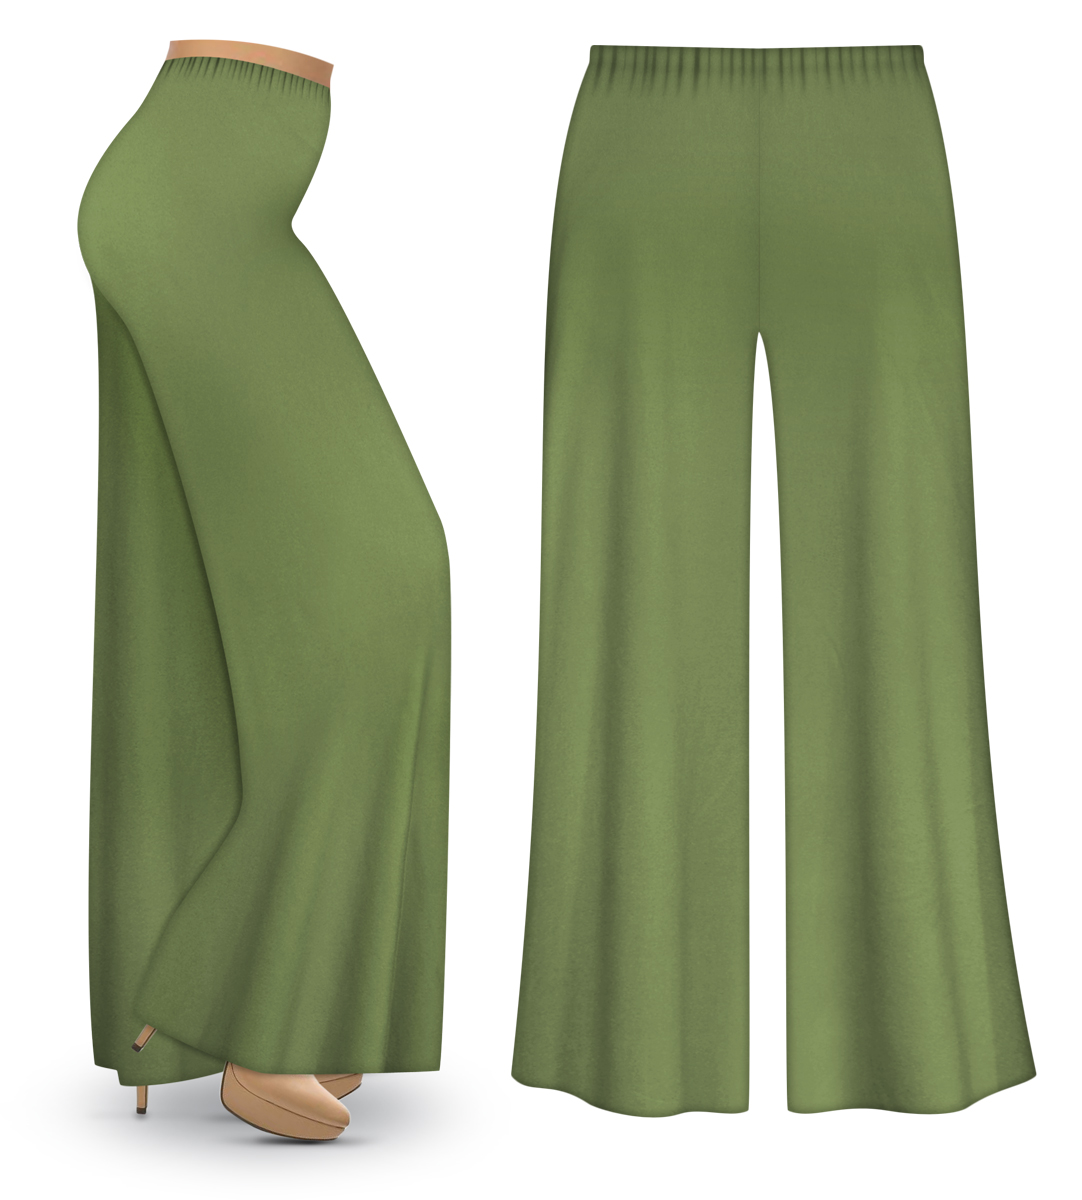 Overstock Anniversary Sale* Save on decor. Spooky Savings Event. Up to 70% off. Cozy Home Event* Up to 35% off. Rec Room Event* Customer Day is Coming Soon! October 15th Shop Sneak Peek > Shore Trendz Women's Wide Leg Boho Palazzo Pants .